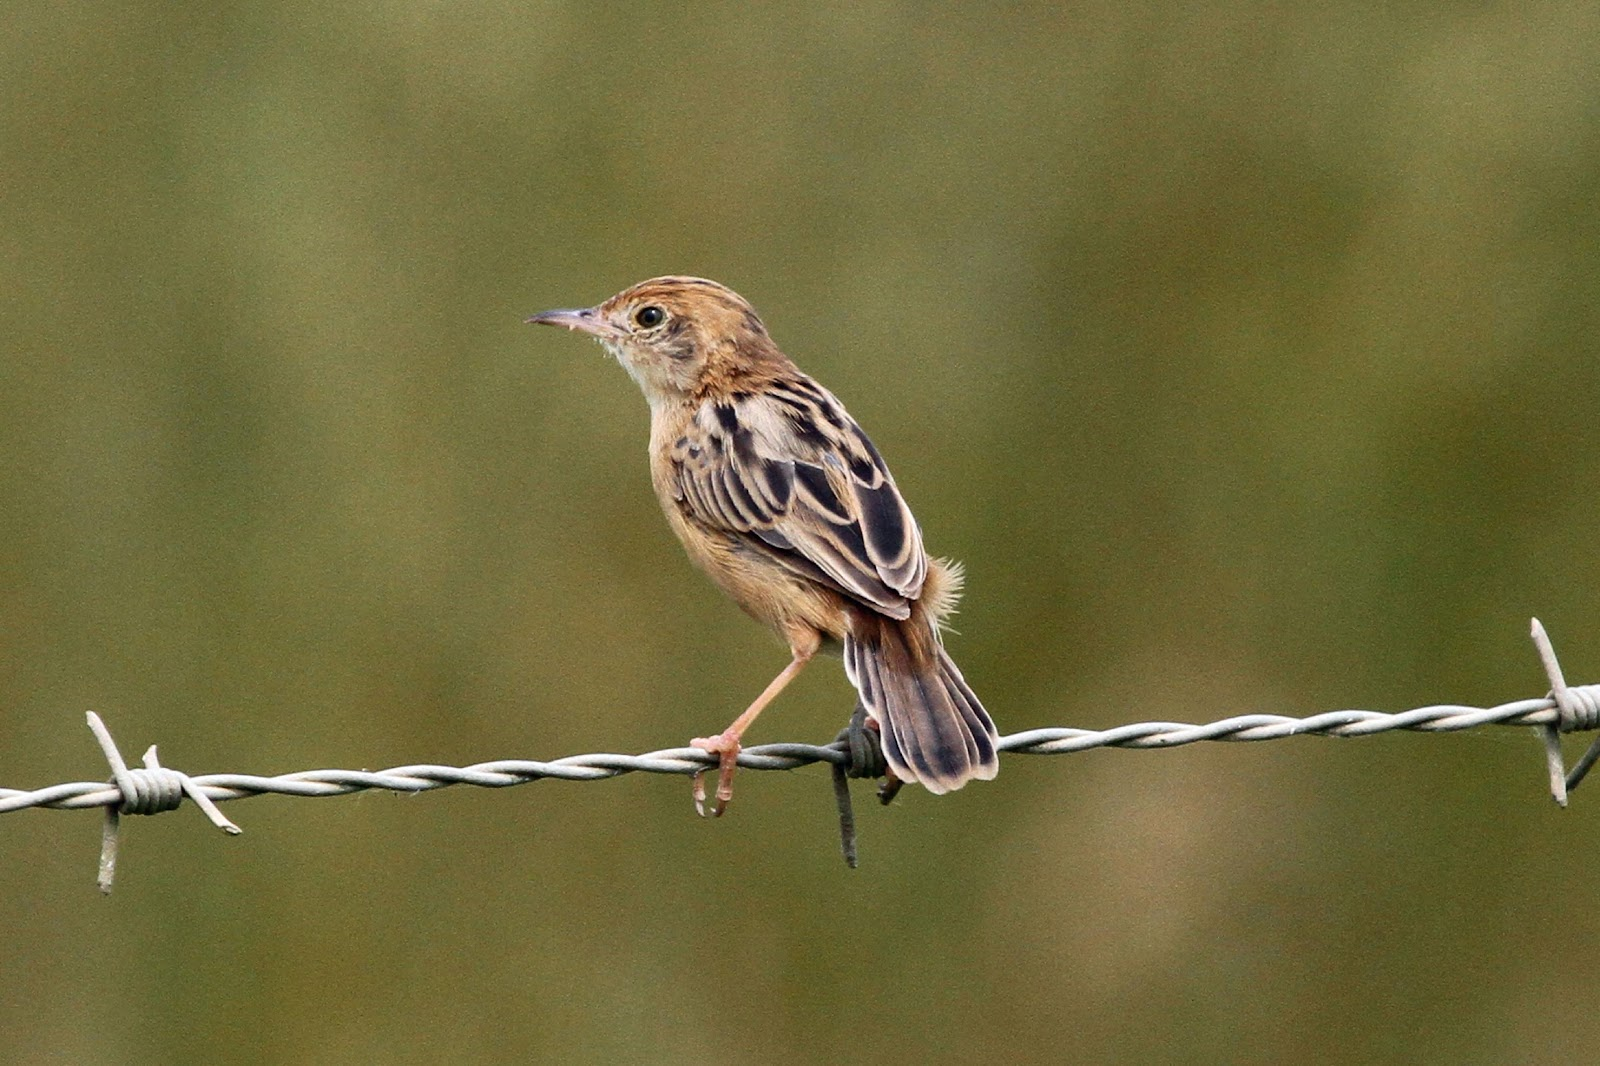 https://upload.wikimedia.org/wikipedia/commons/2/25/Cisticola_exilis_-Daintree%2C_Queensland%2C_Australia-8.jpg